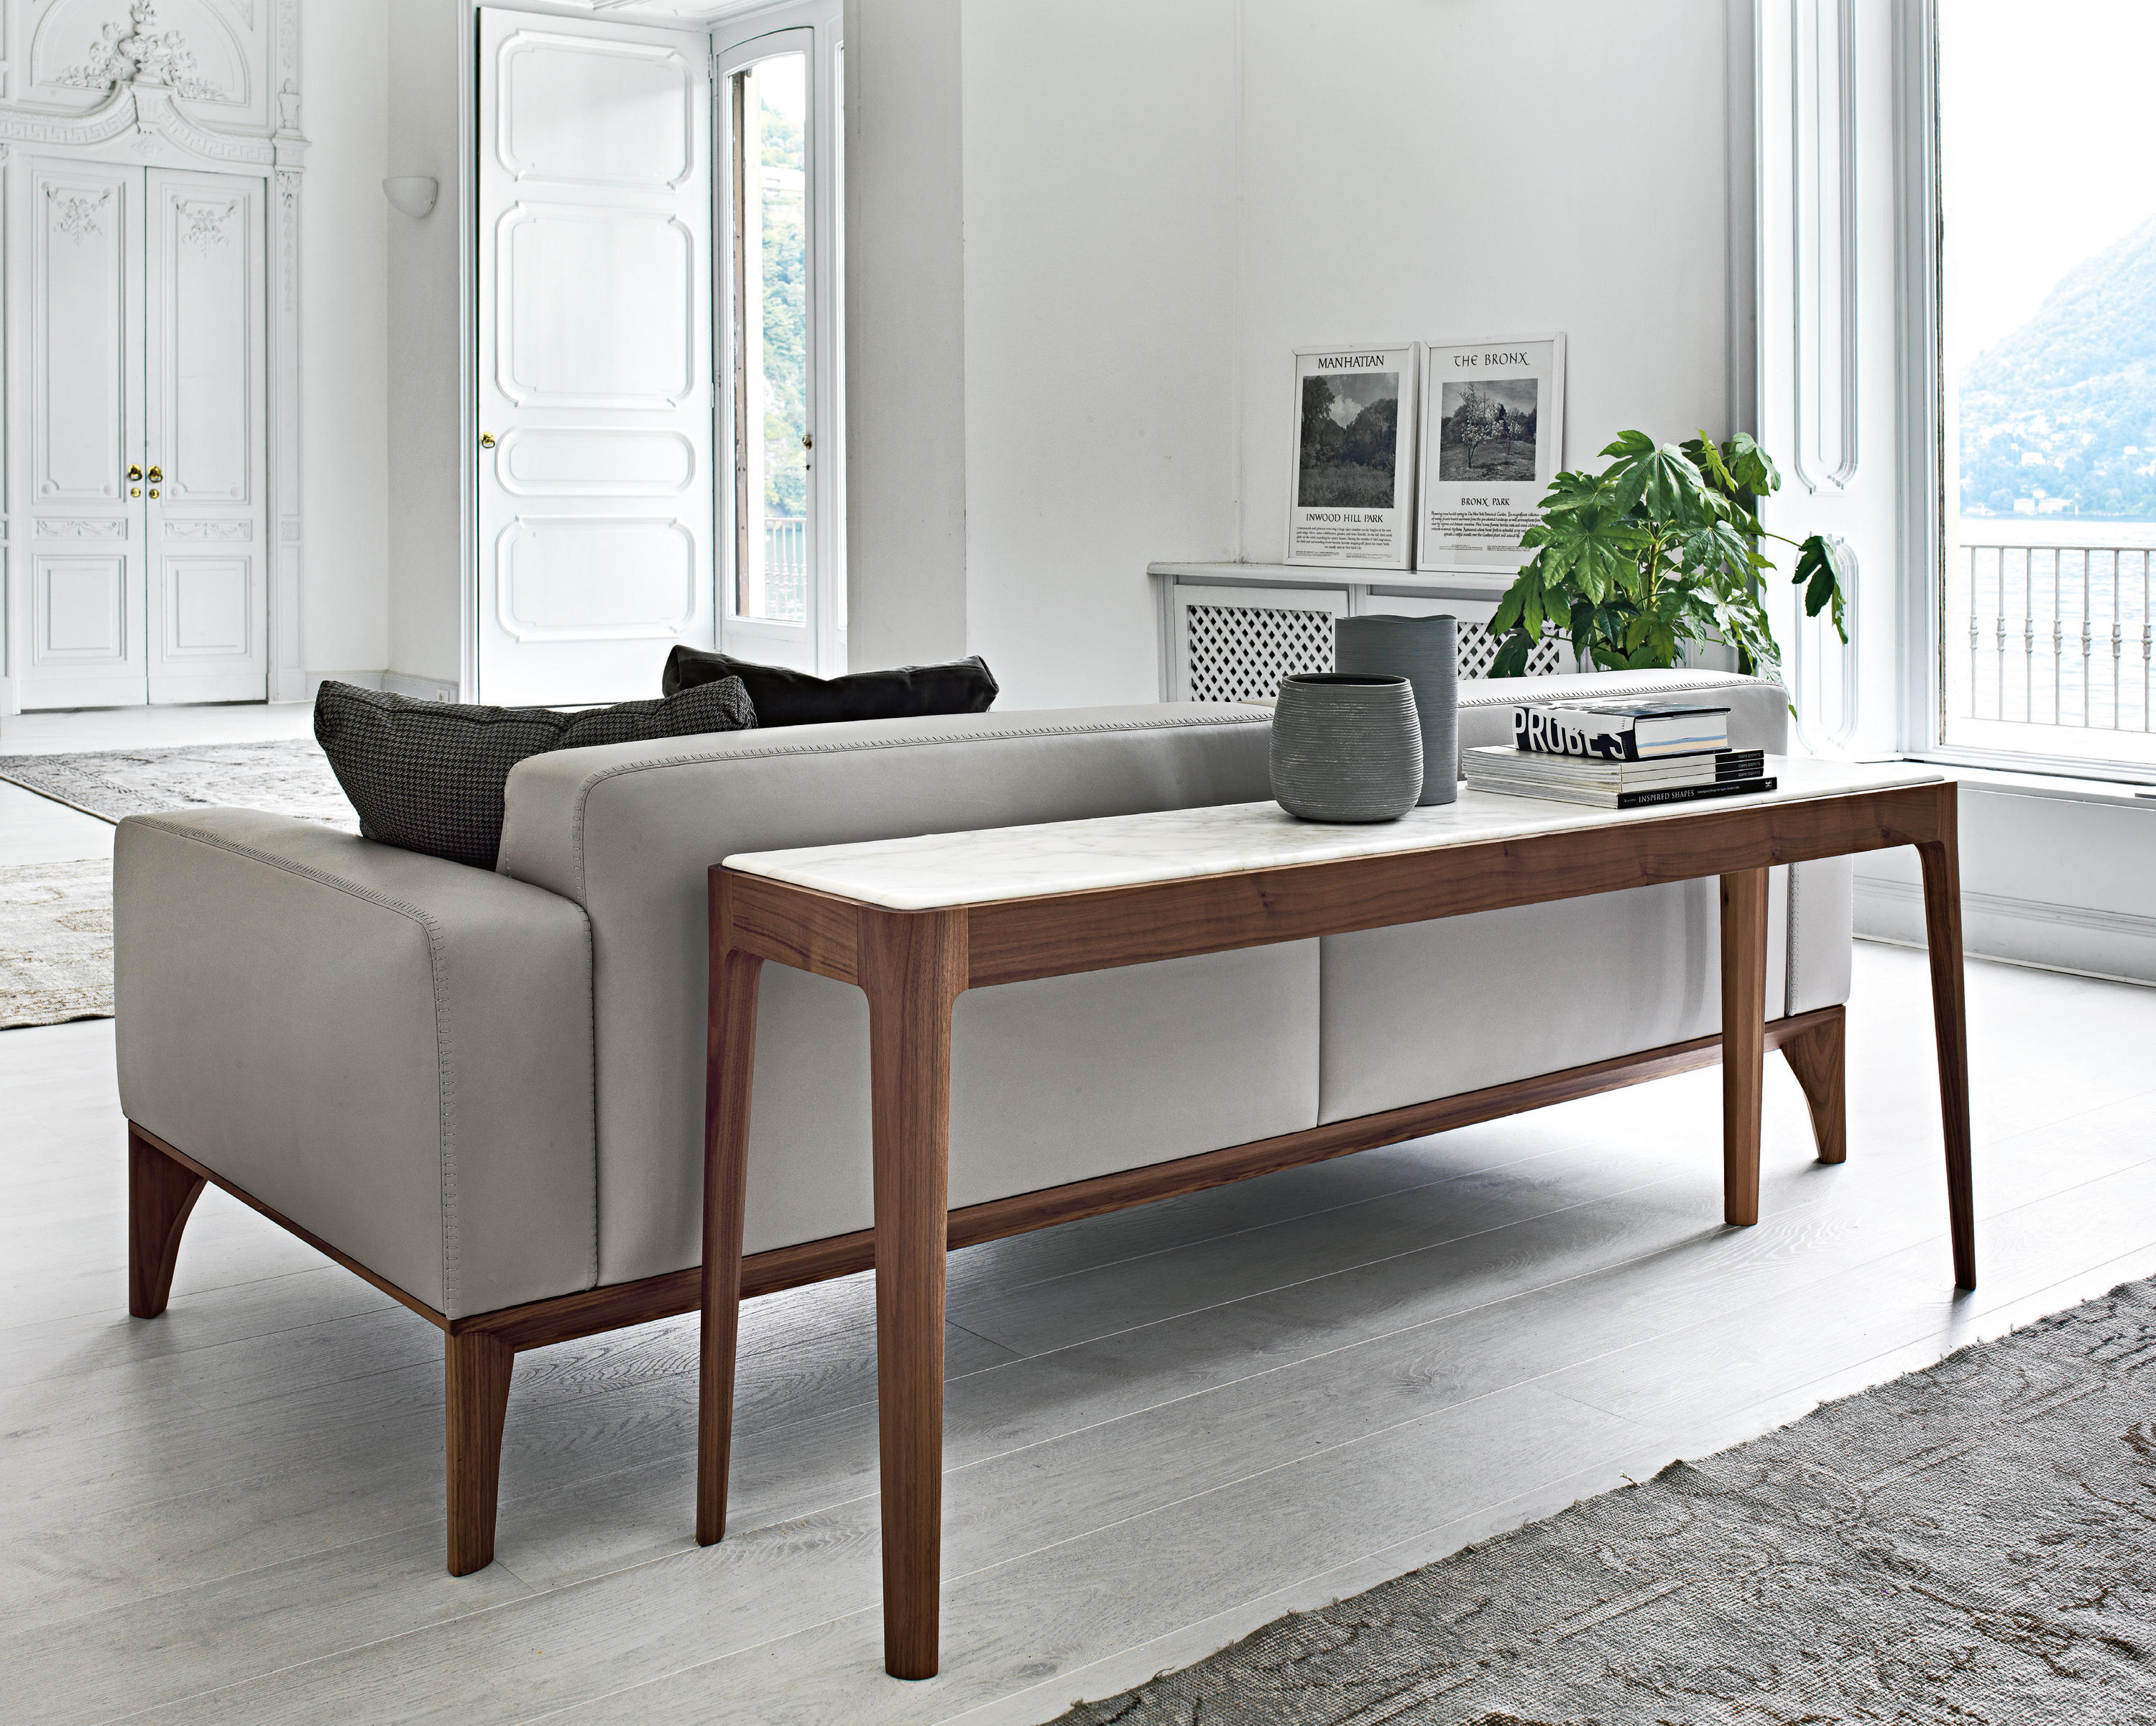 Ziggy 8 Console Tables From Porada Architonic